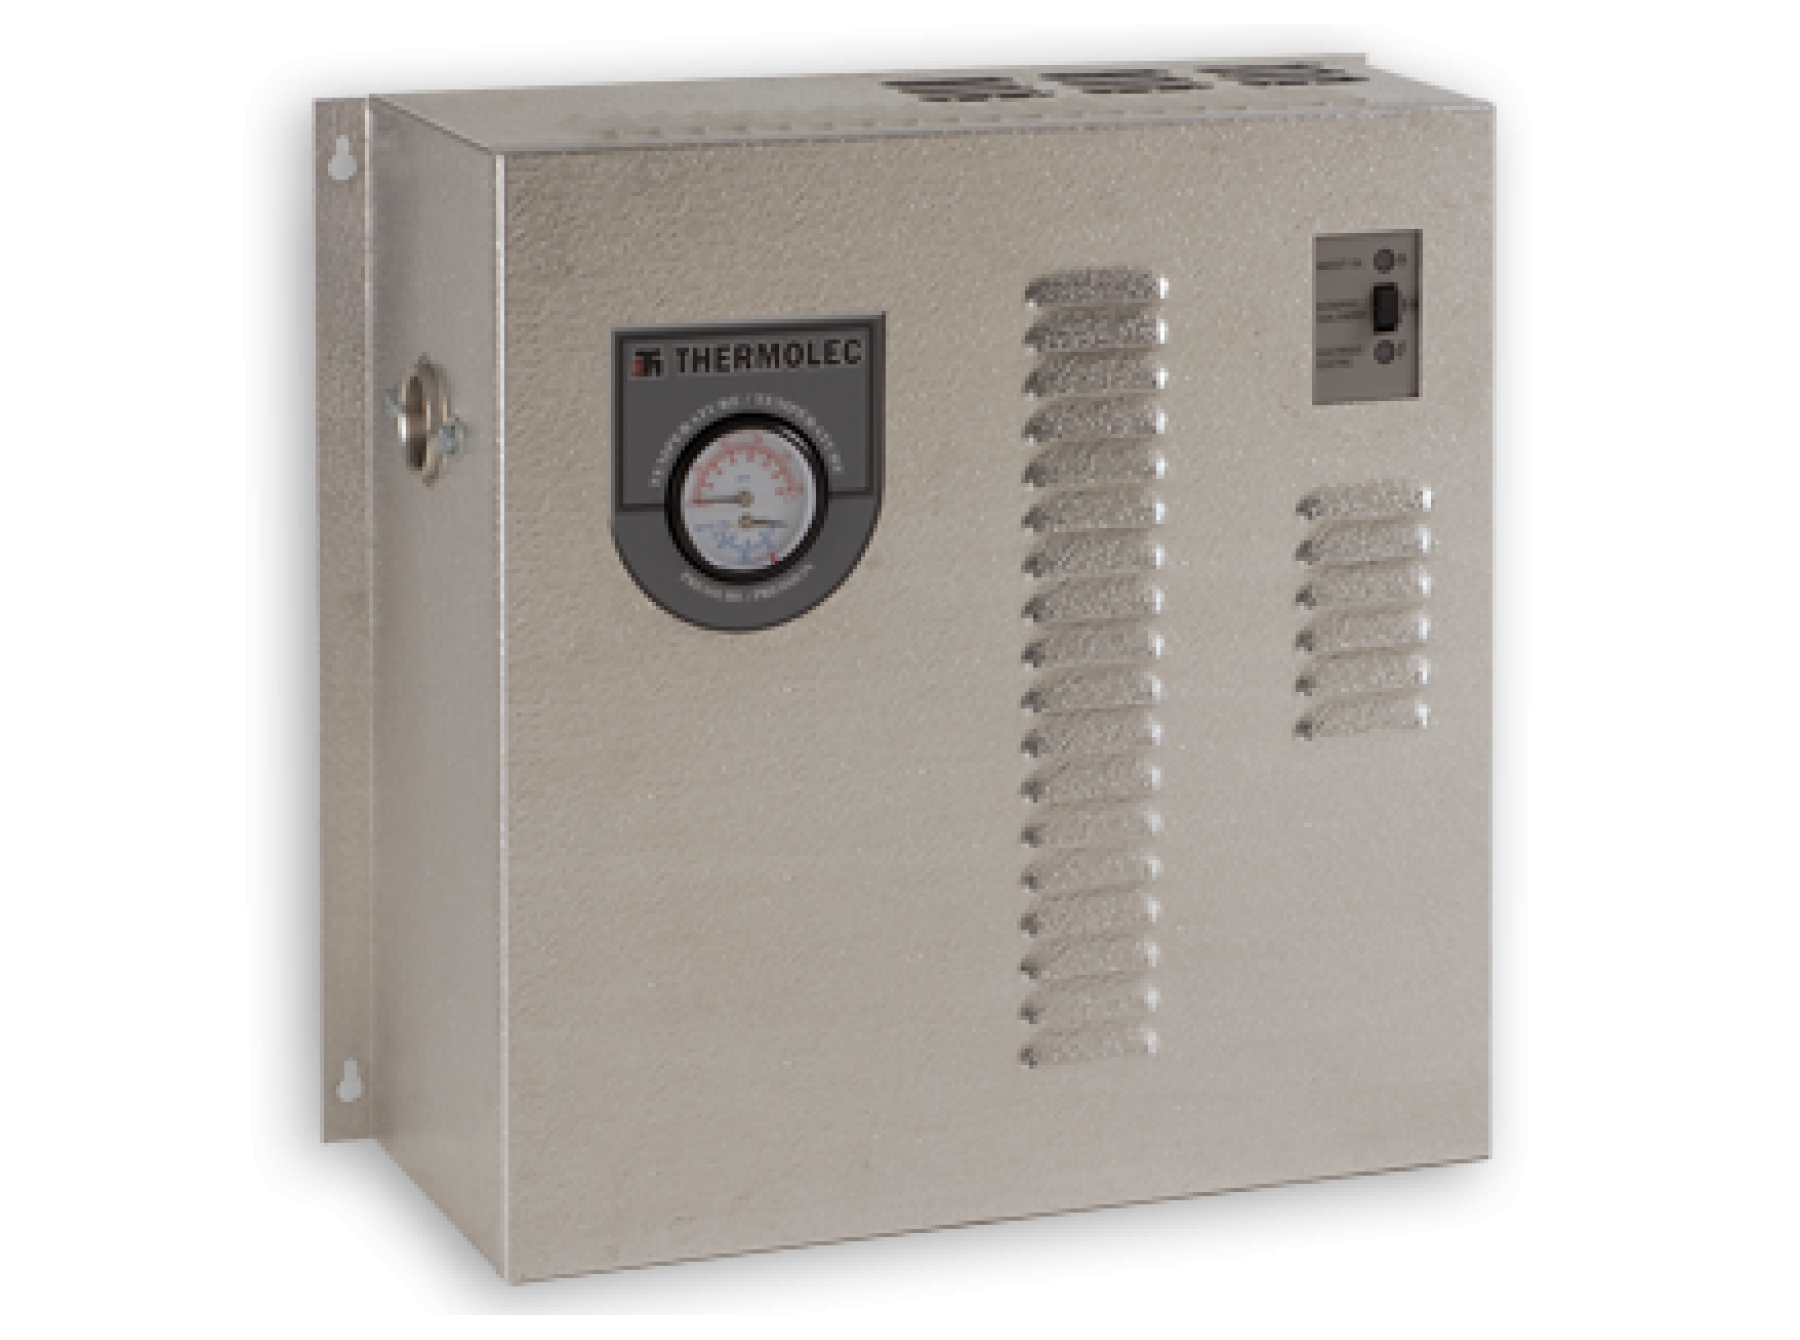 thermolec electric boiler wiring diagram 1999 mitsubishi eclipse available in canada ward heating